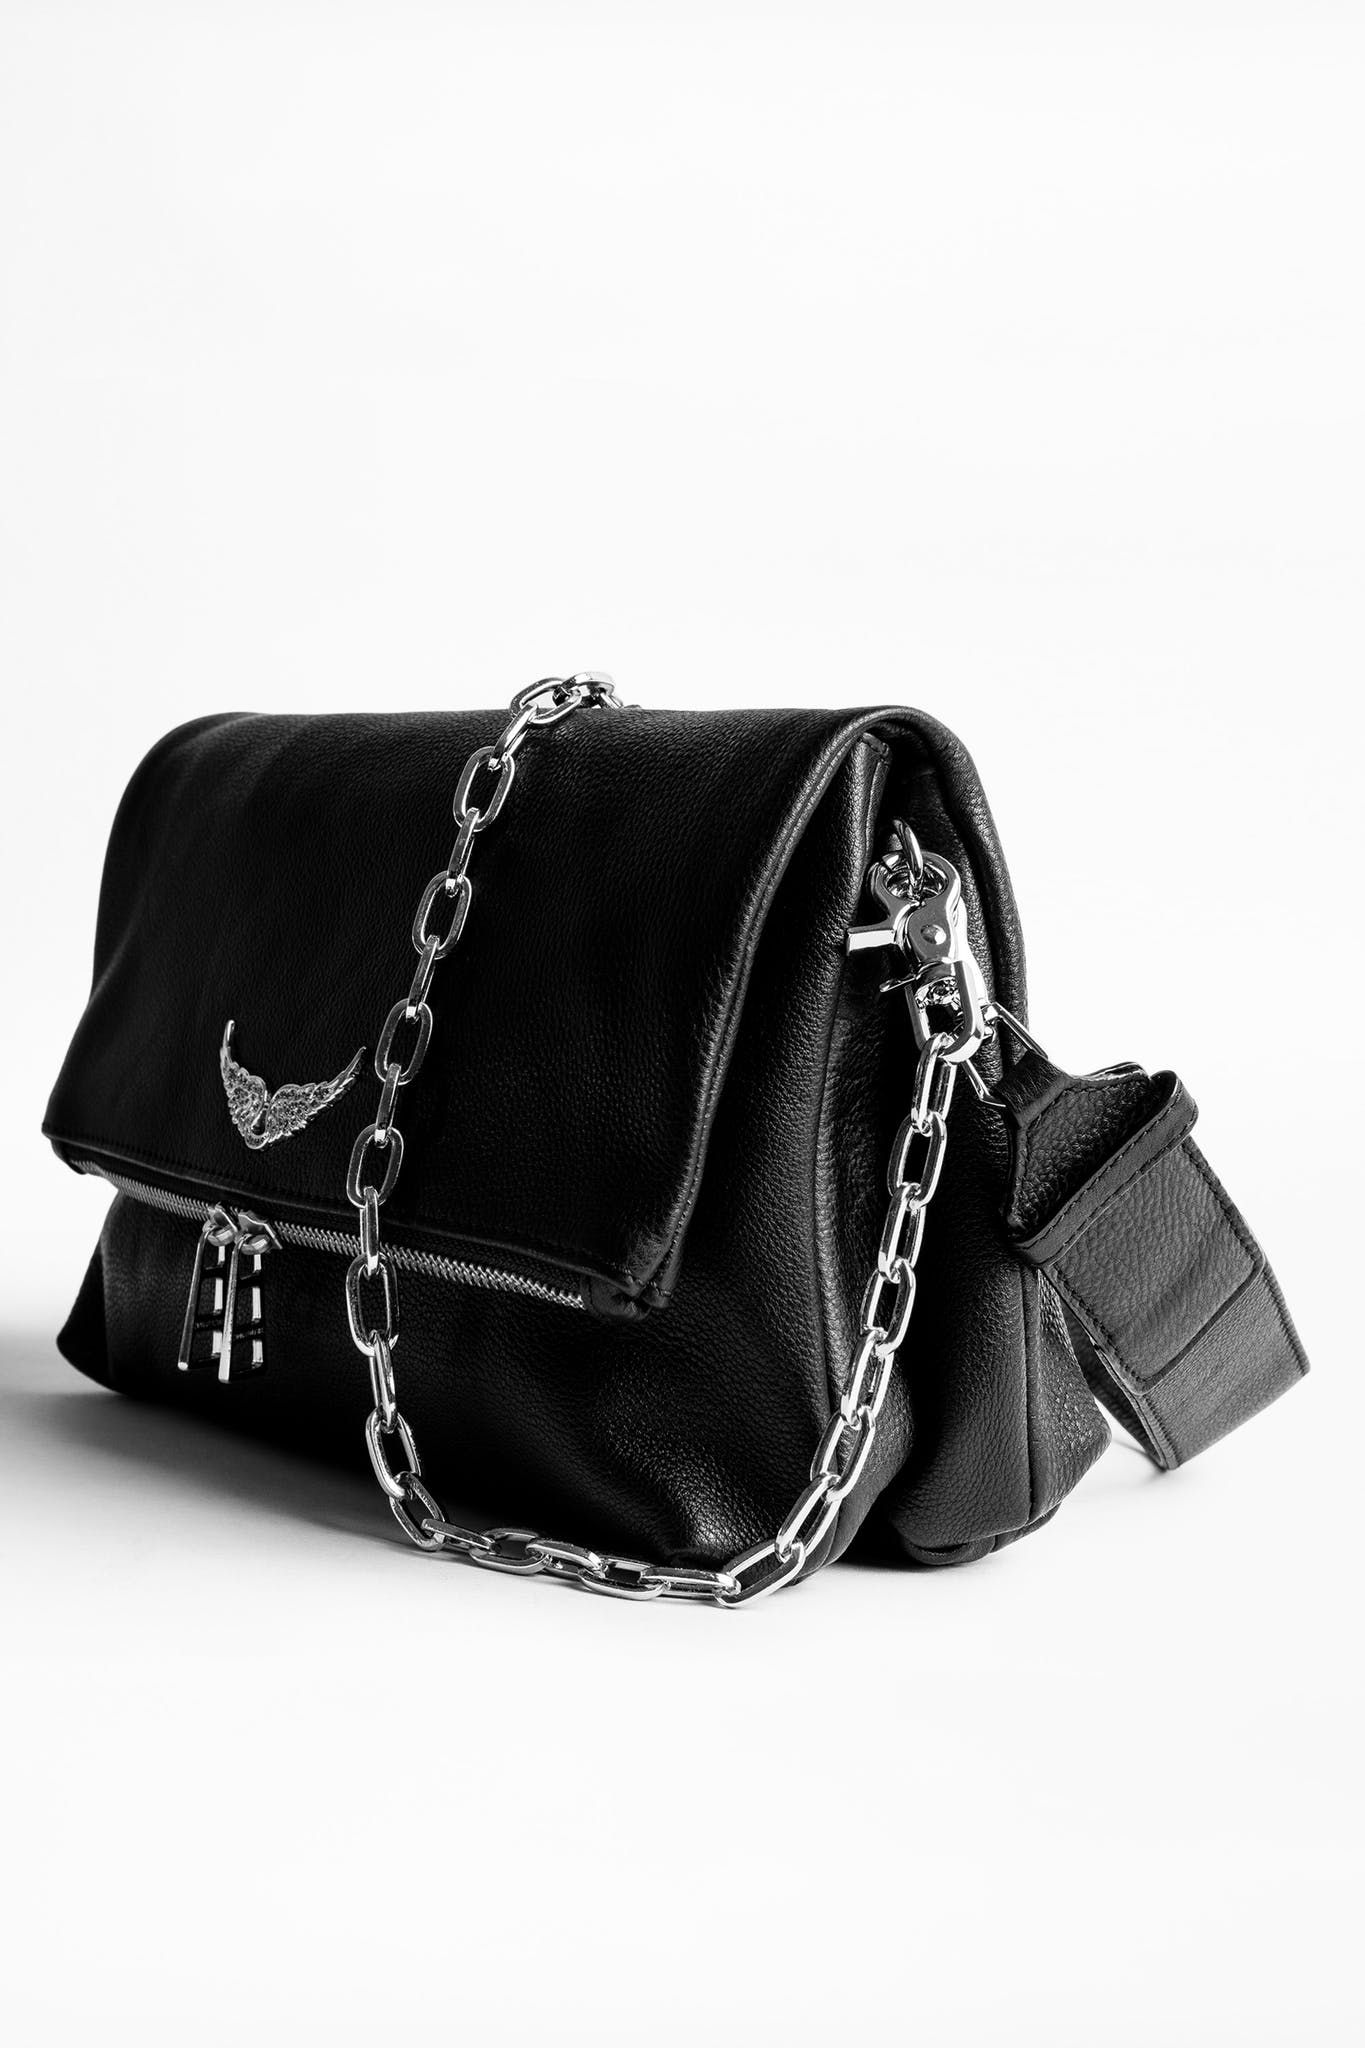 Rocky Bag Black Leather Bags Zadig And Voltaire Bags Women